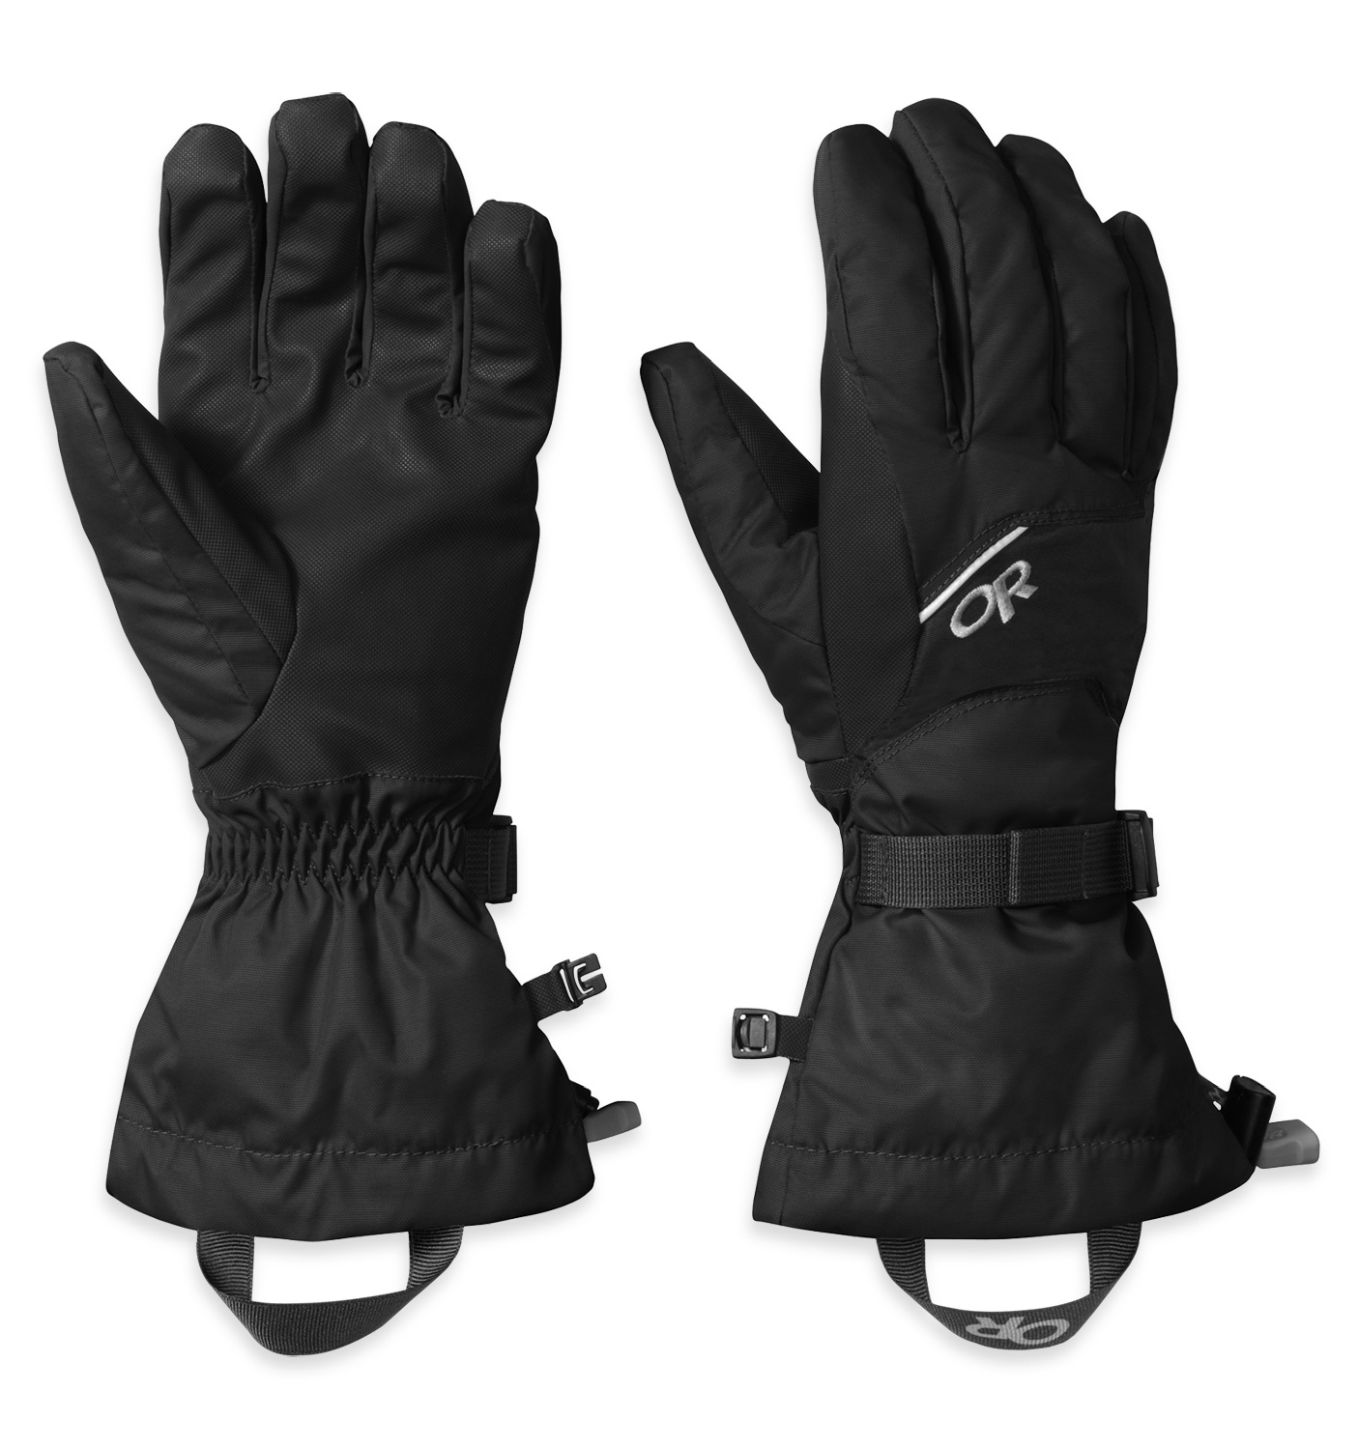 Outdoor Research Men's Adrenaline Gloves black-30